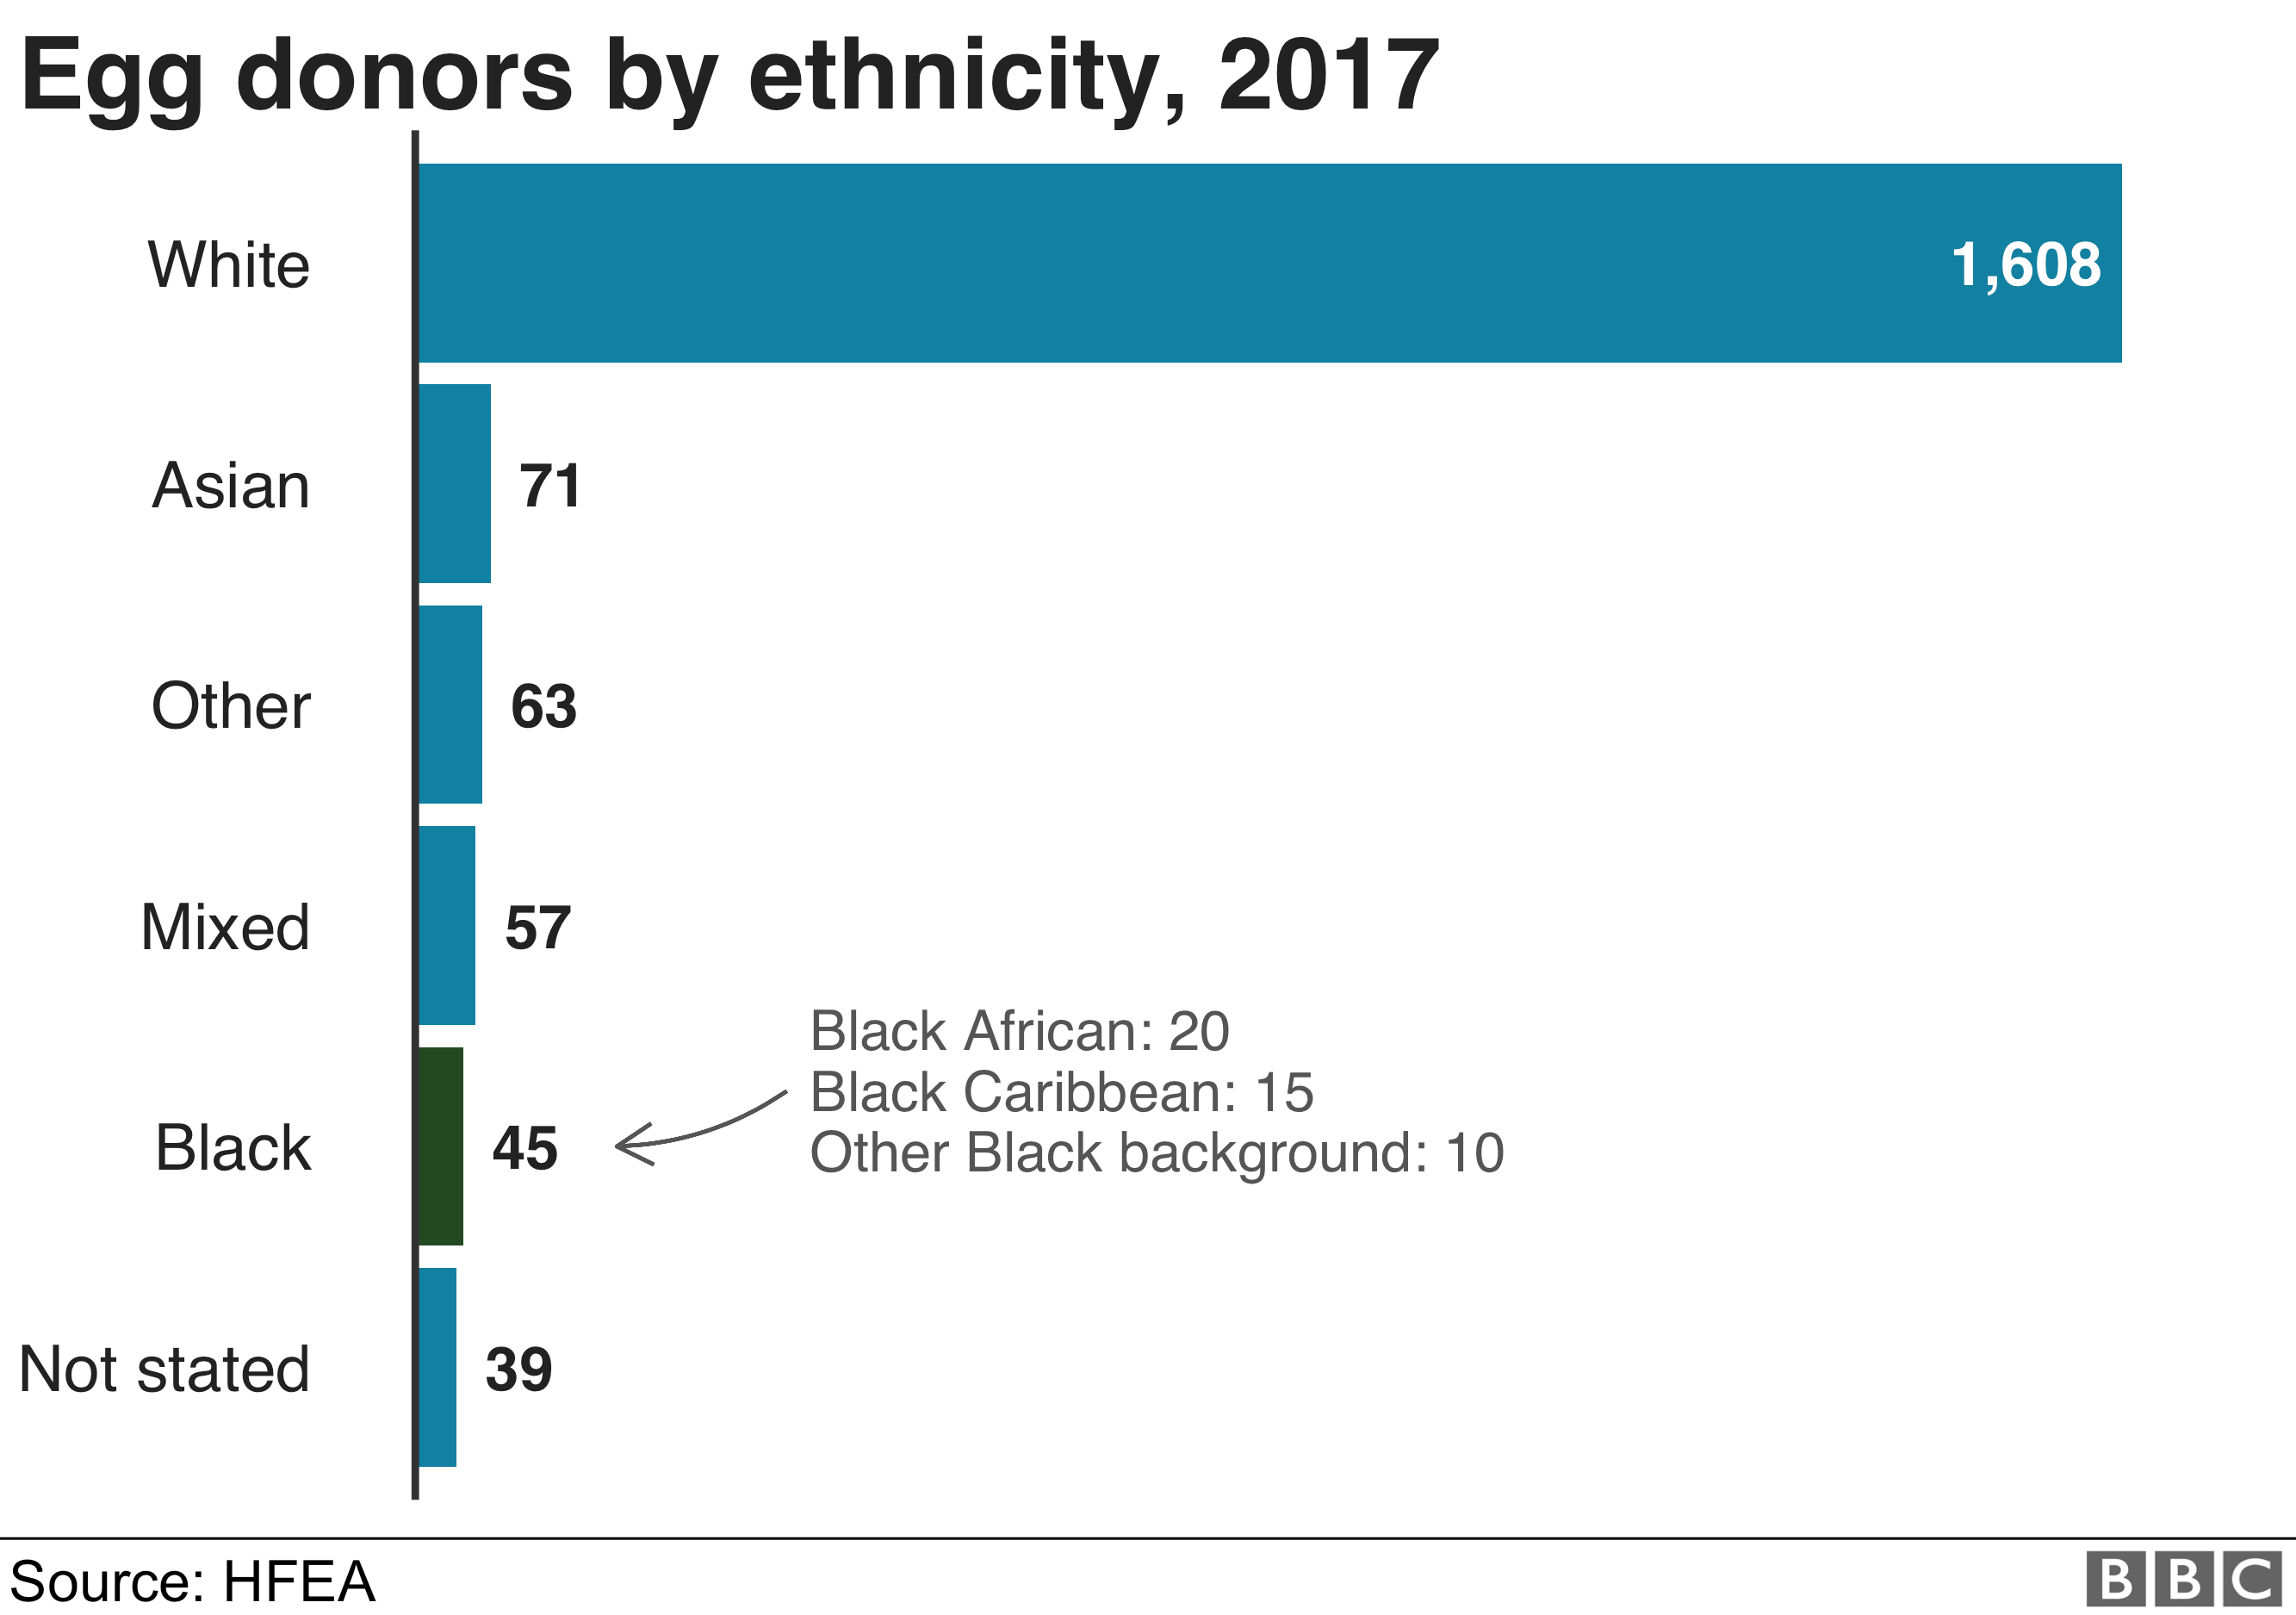 egg donors by ethnicity